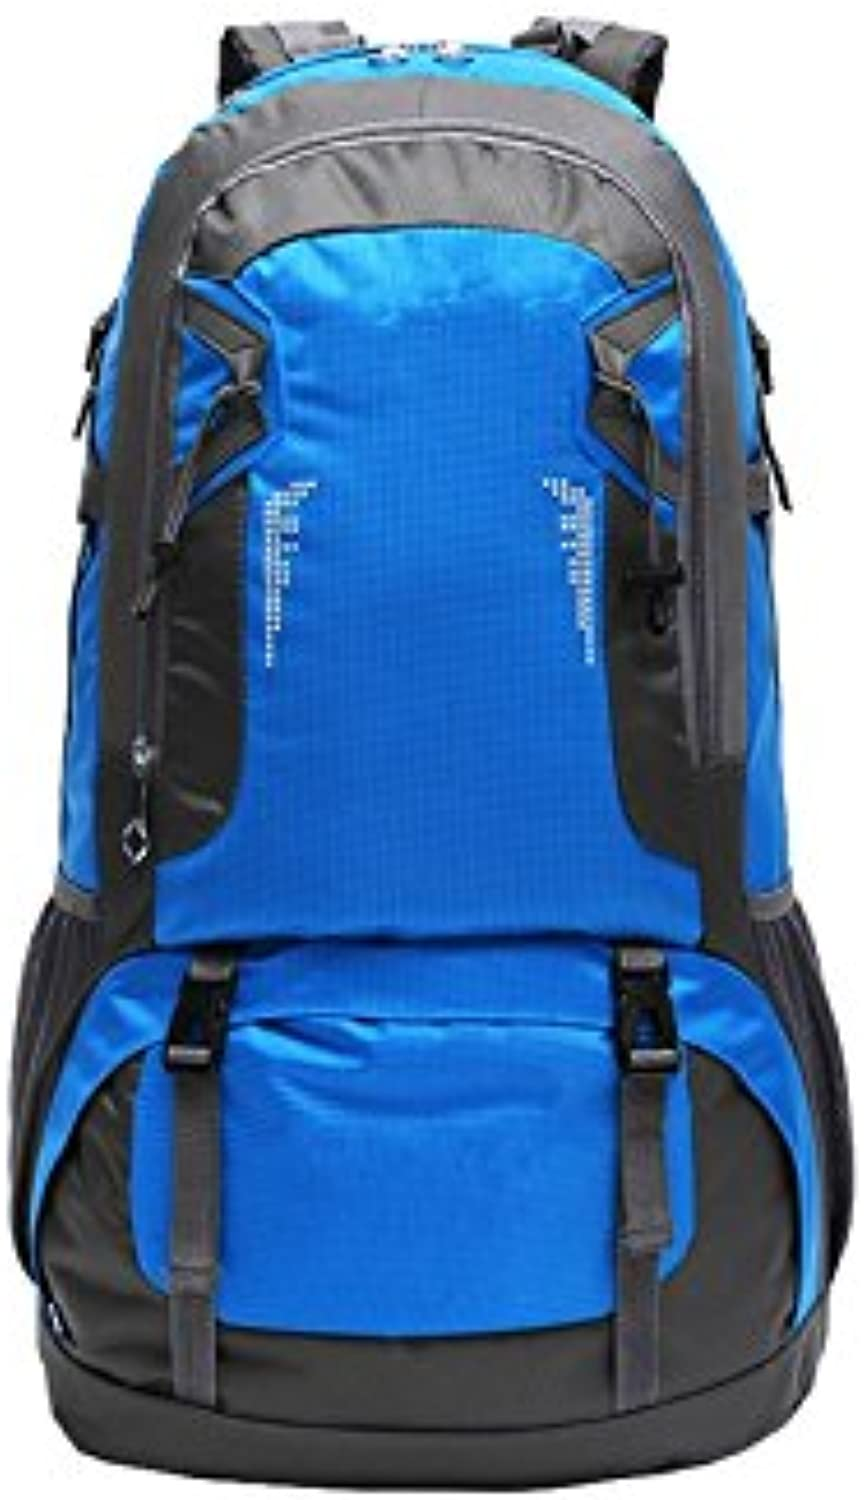 Hiking Lightweight Hiking Rucksack Breathable Bike Bags Great Small Backpacks(bluee) for Outdoor Traveling